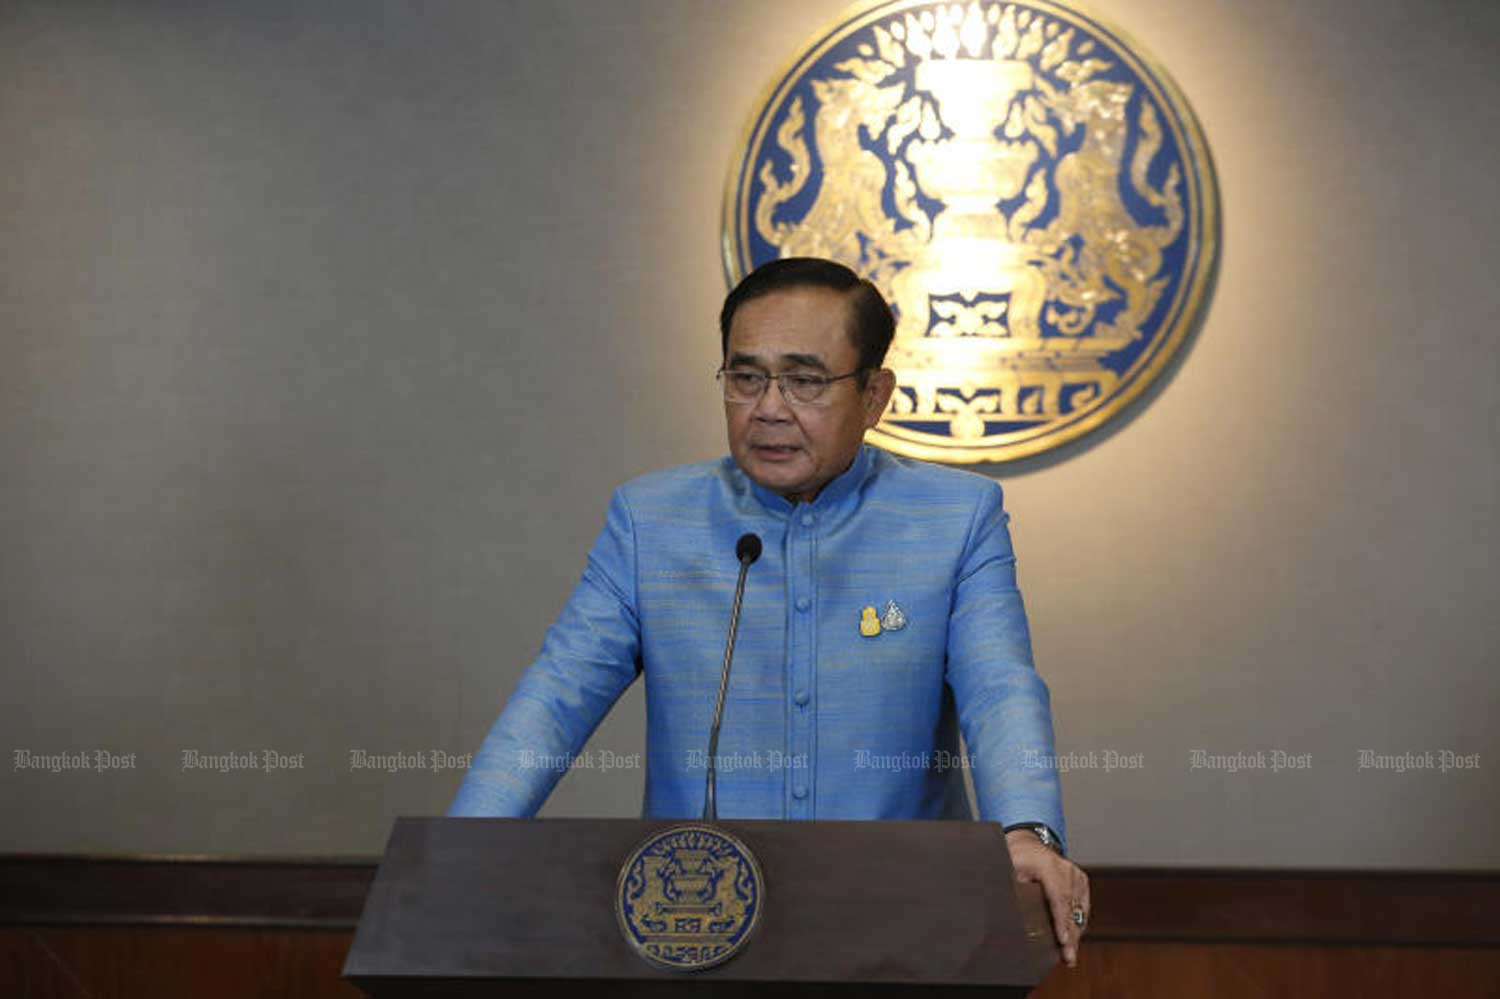 Prime Minister Prayut Chan-o-cha speaks to reporters after the cabinet's meeting at Government House in Bangkok on Tuesday. (Photo by Pornprom Satrabhaya)